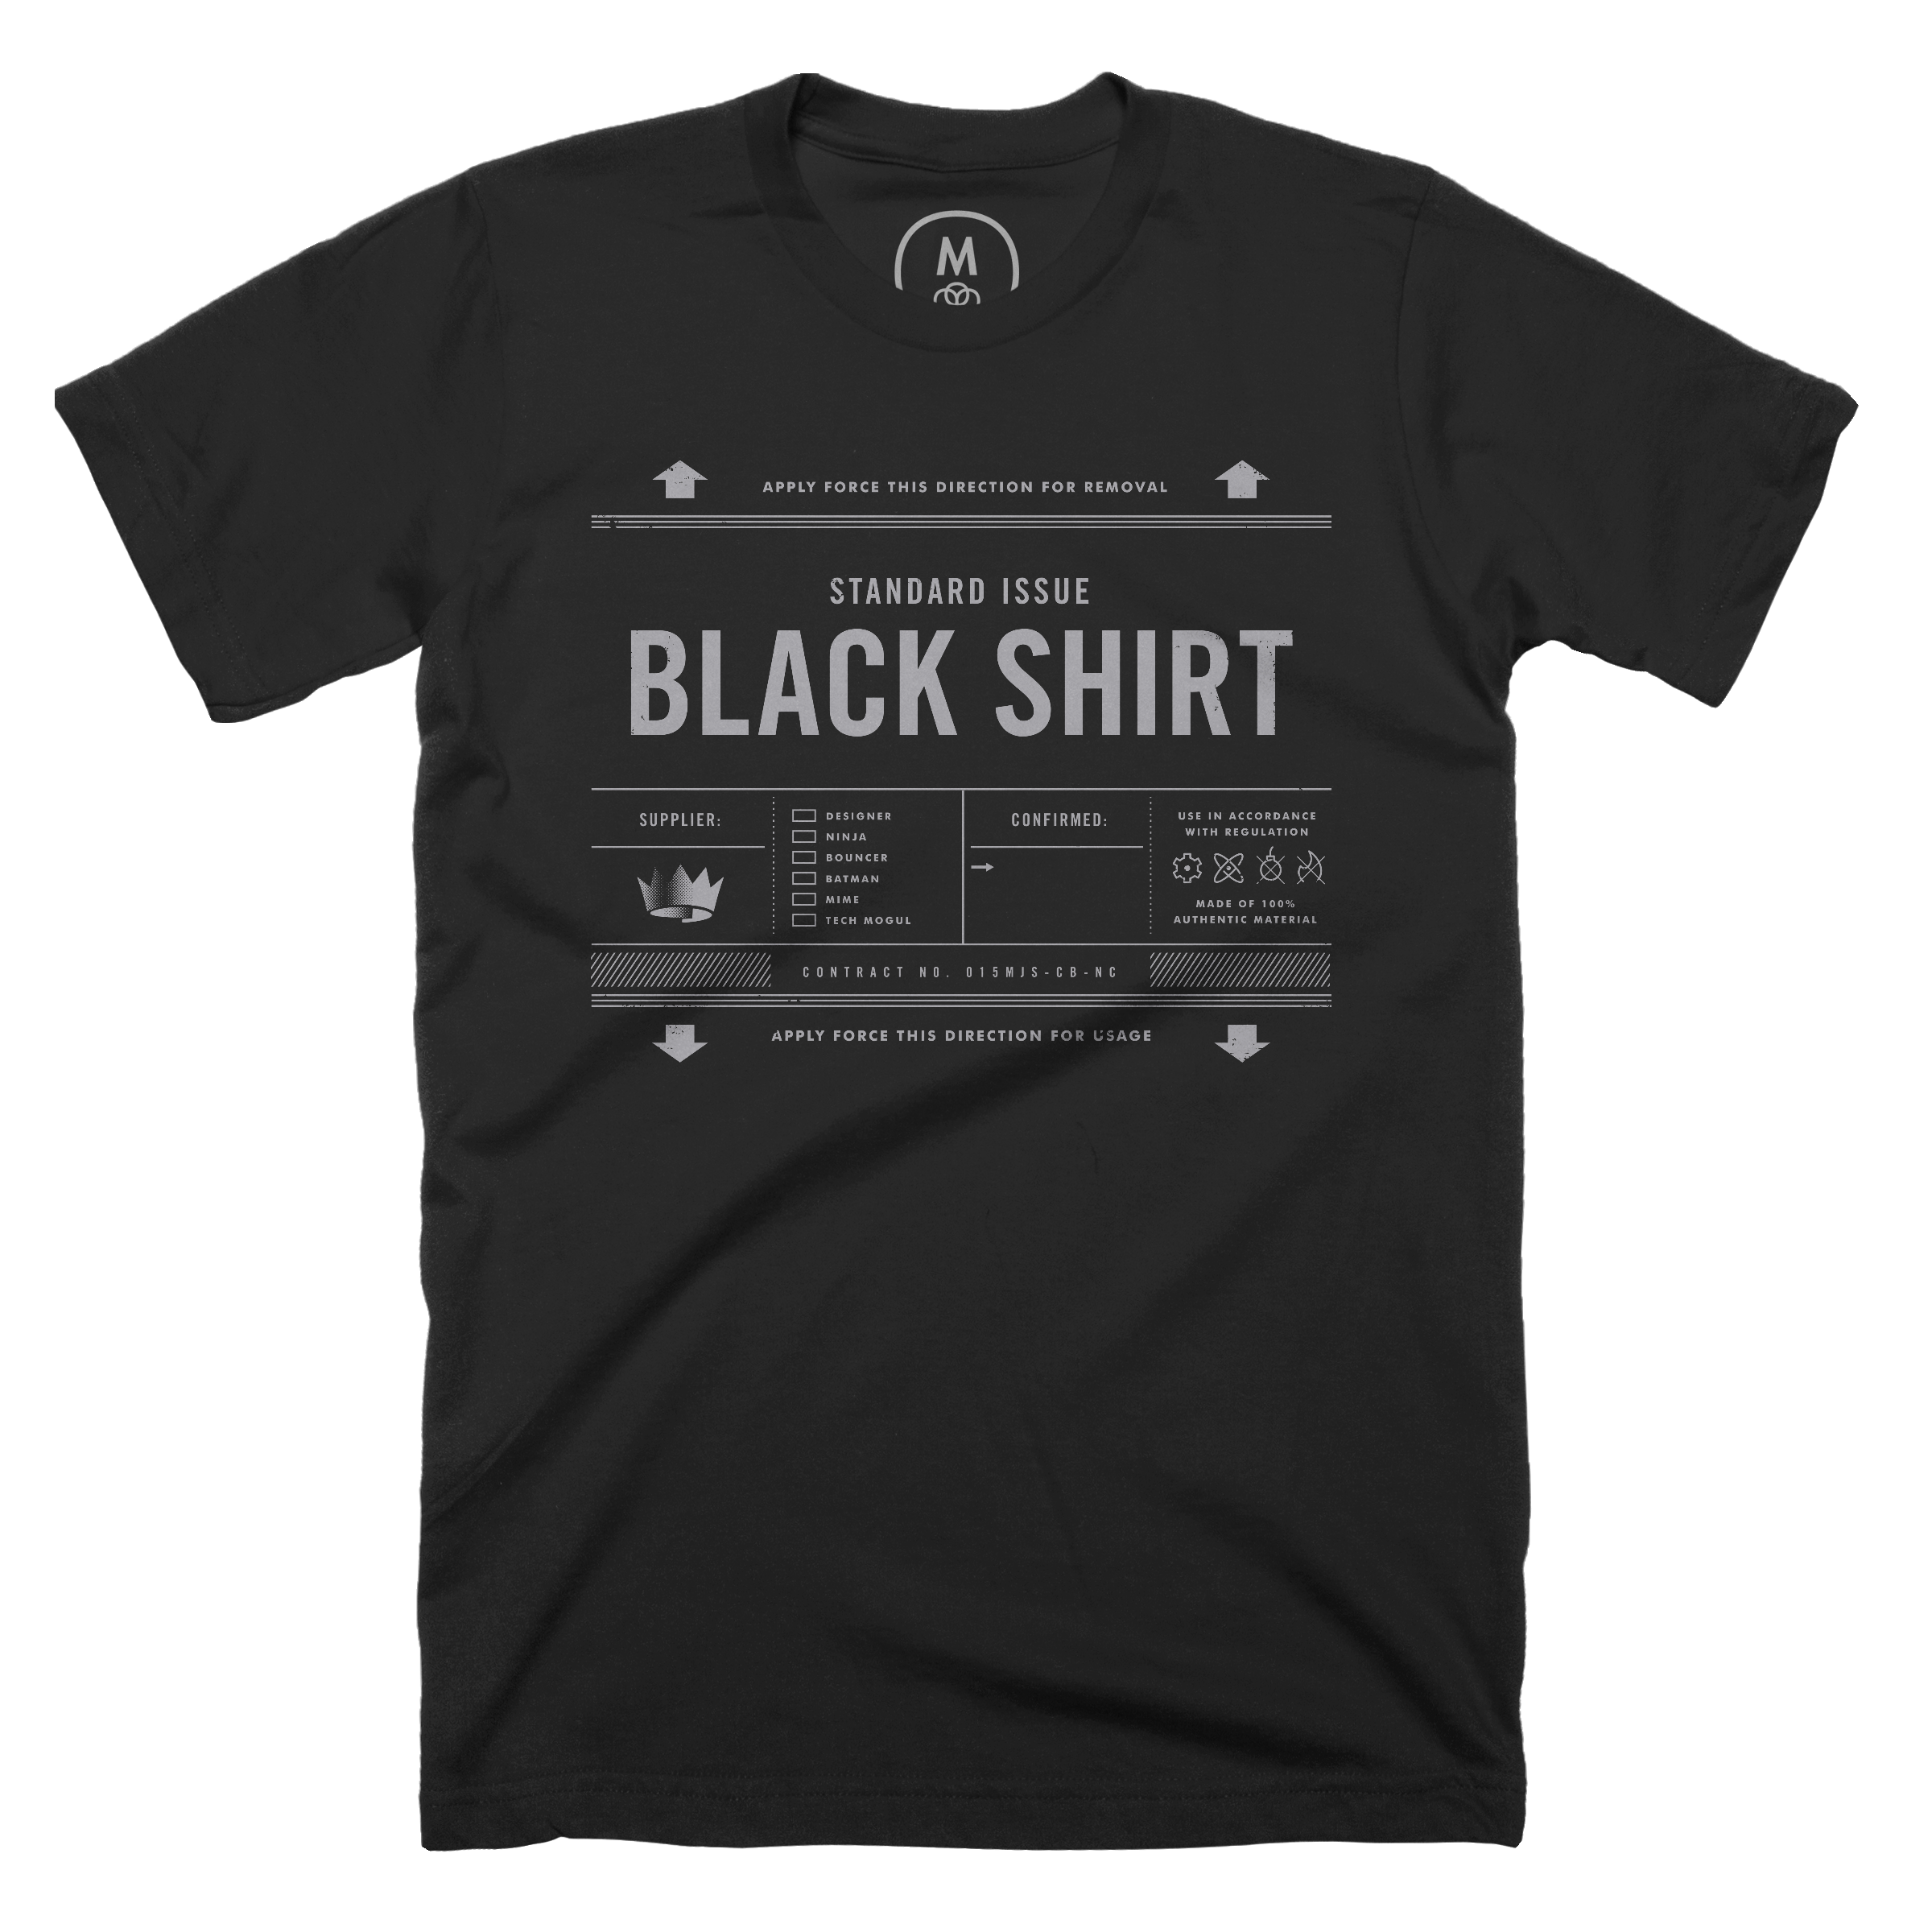 Standard Issue Black Shirt